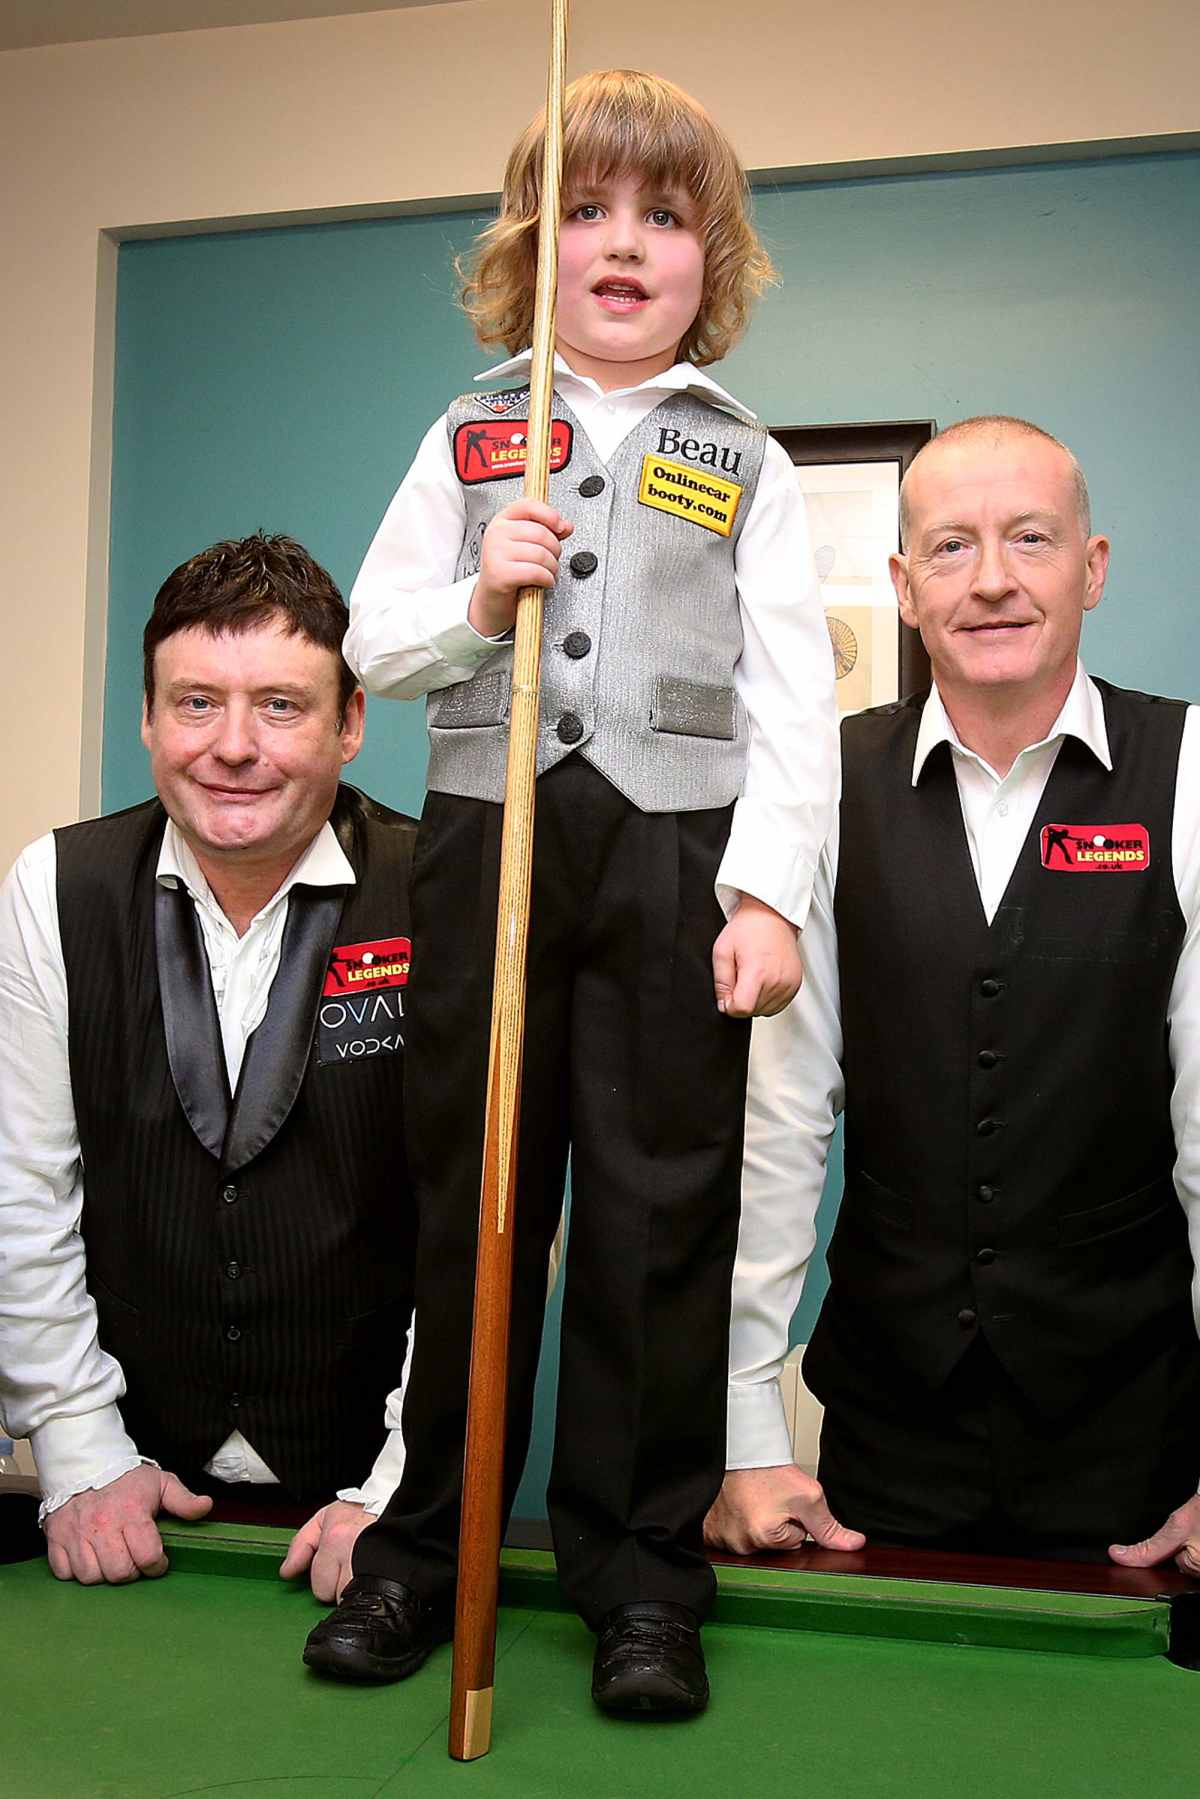 Talented youngster plays alongside snooker legends Jimmy White and Steve Davis